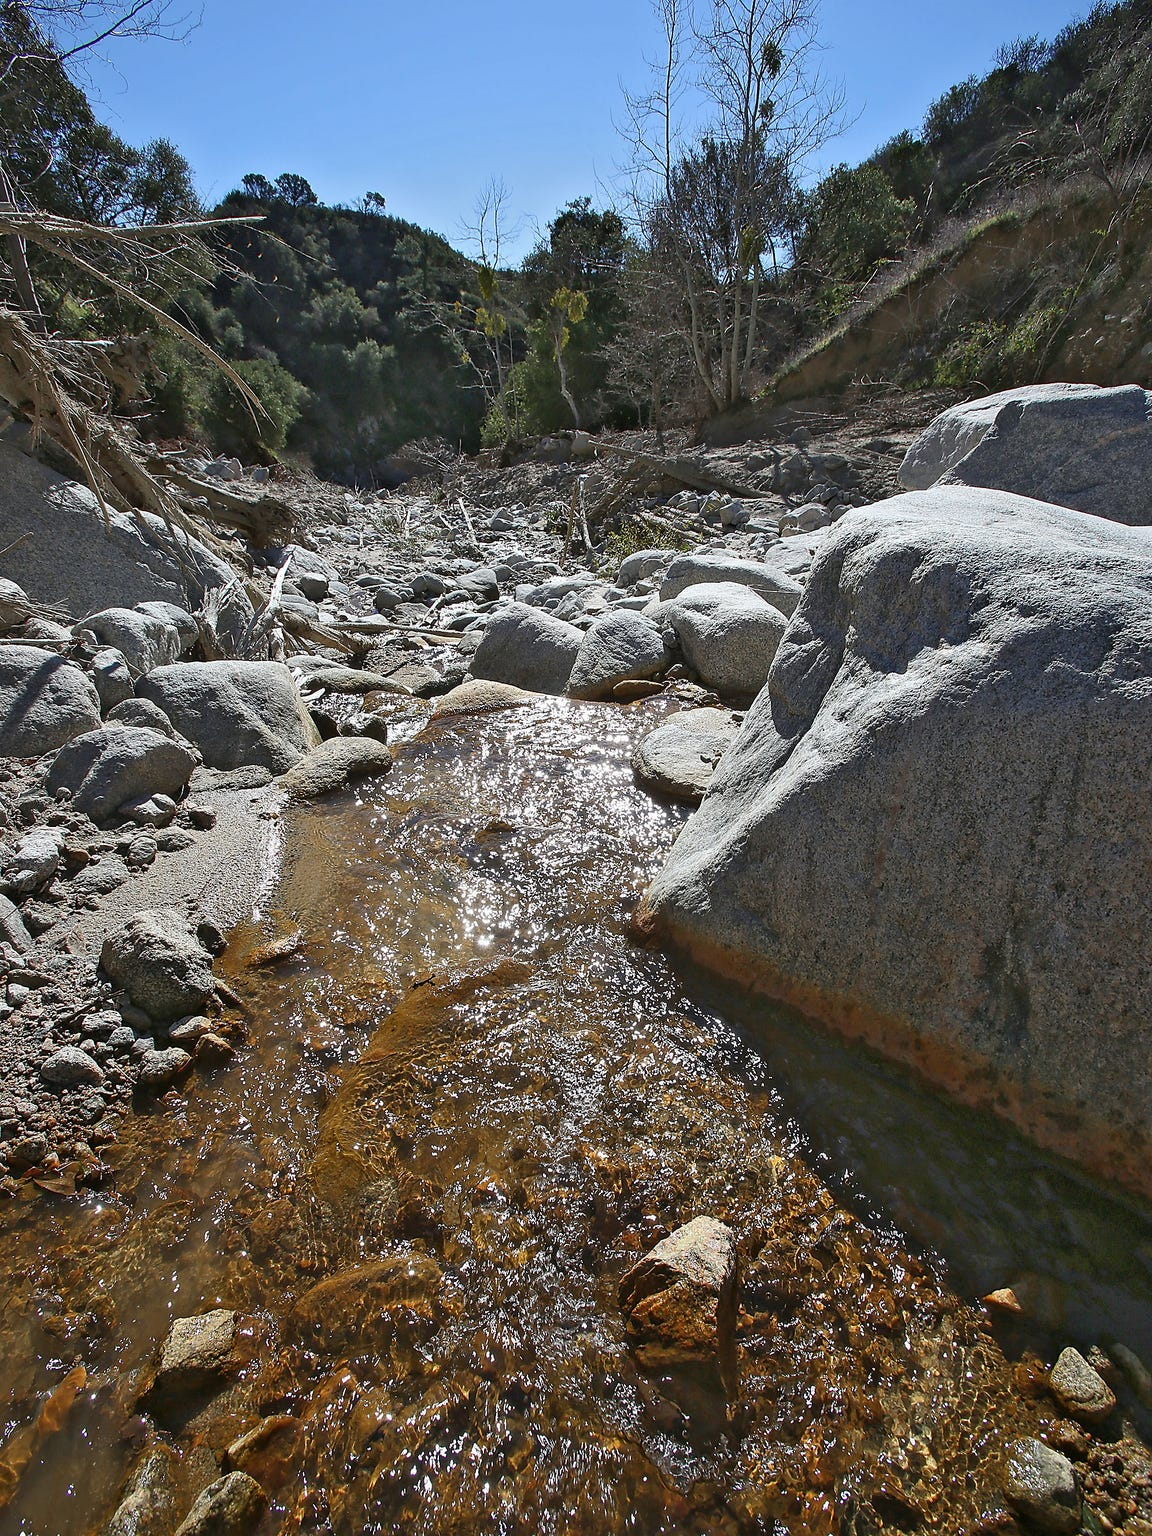 Water flows down Strawberry Creek in the mountains north of San Bernardino.